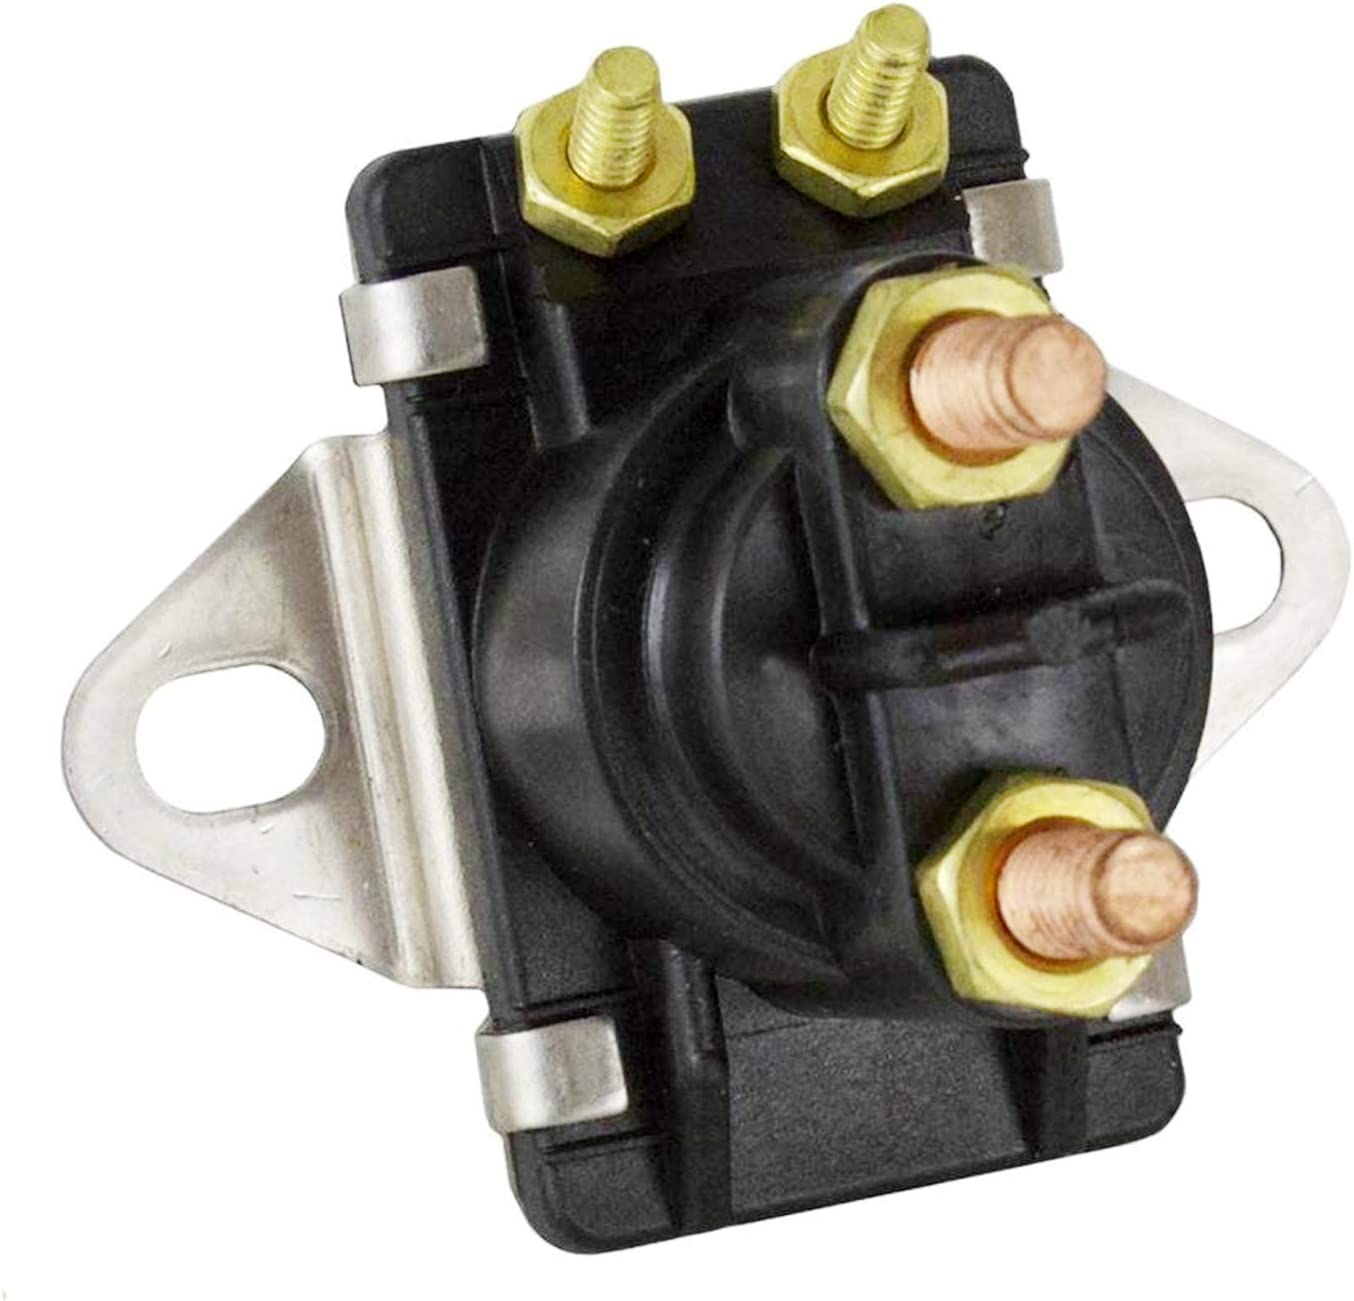 Solarhome 12V Starter//Power Trim Solenoid for Mercury Mariner Outboard Motors 89-96158T 89-846070 89-94318 89-96158 89-96158T